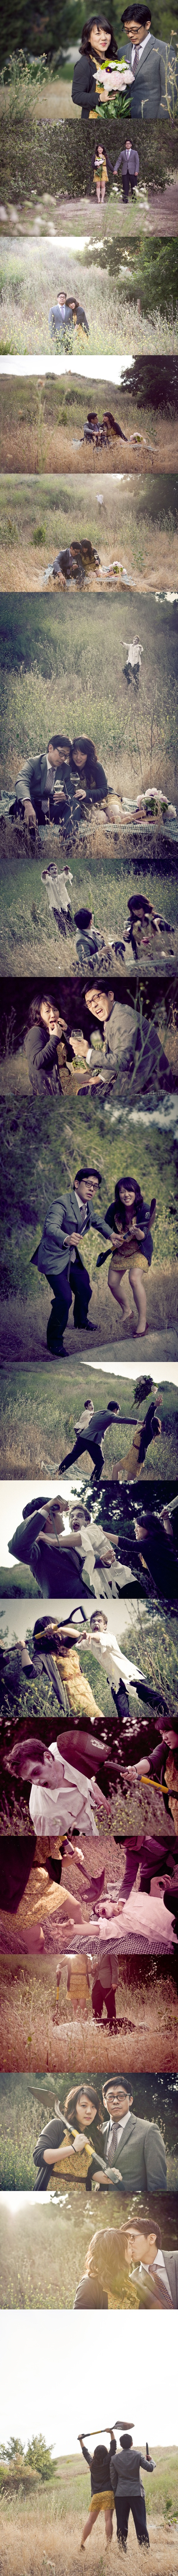 Best engagement photos ever